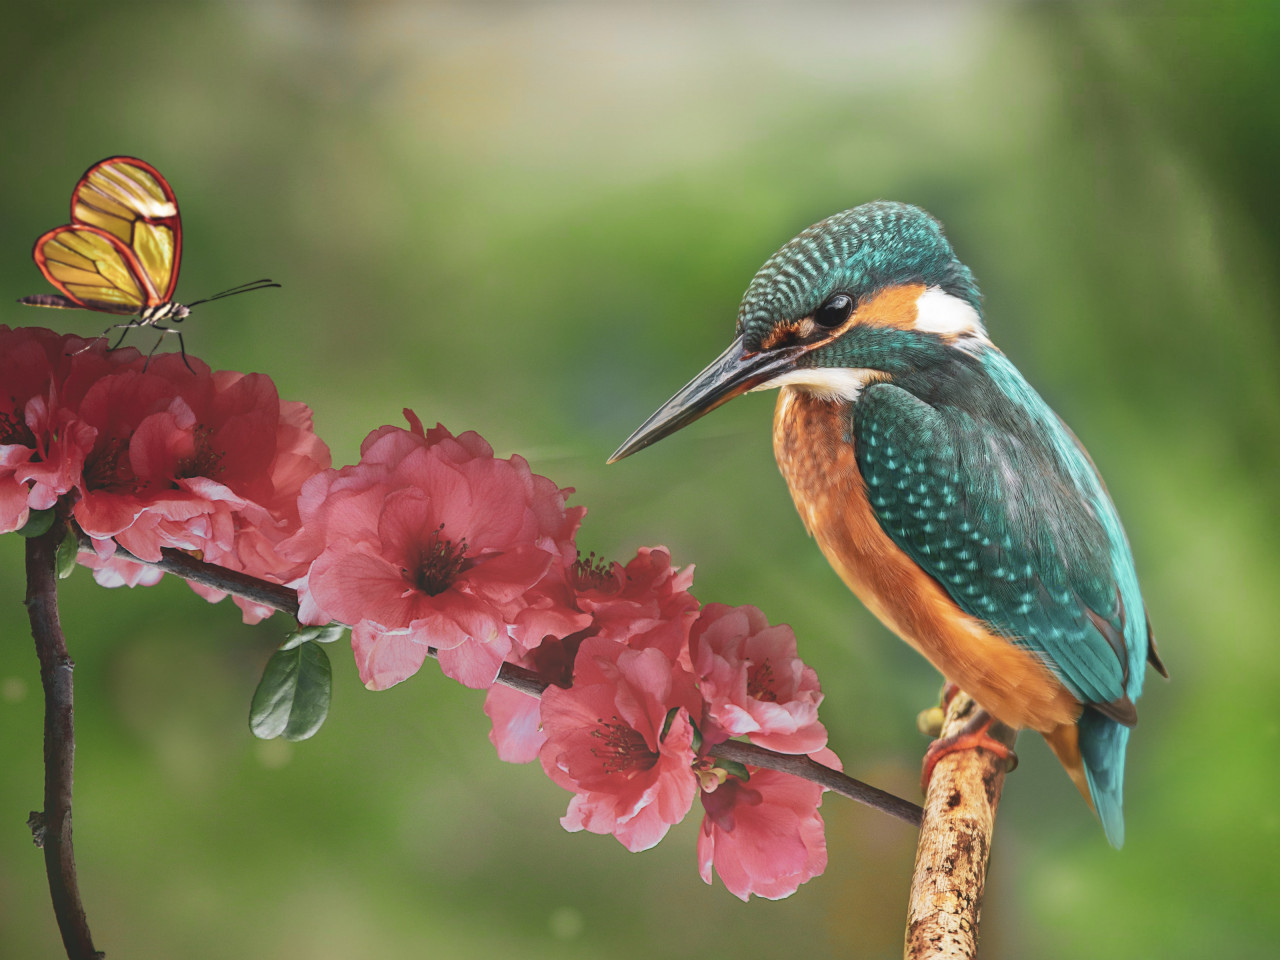 Kingfisher and the butterfly wallpaper 1280x960